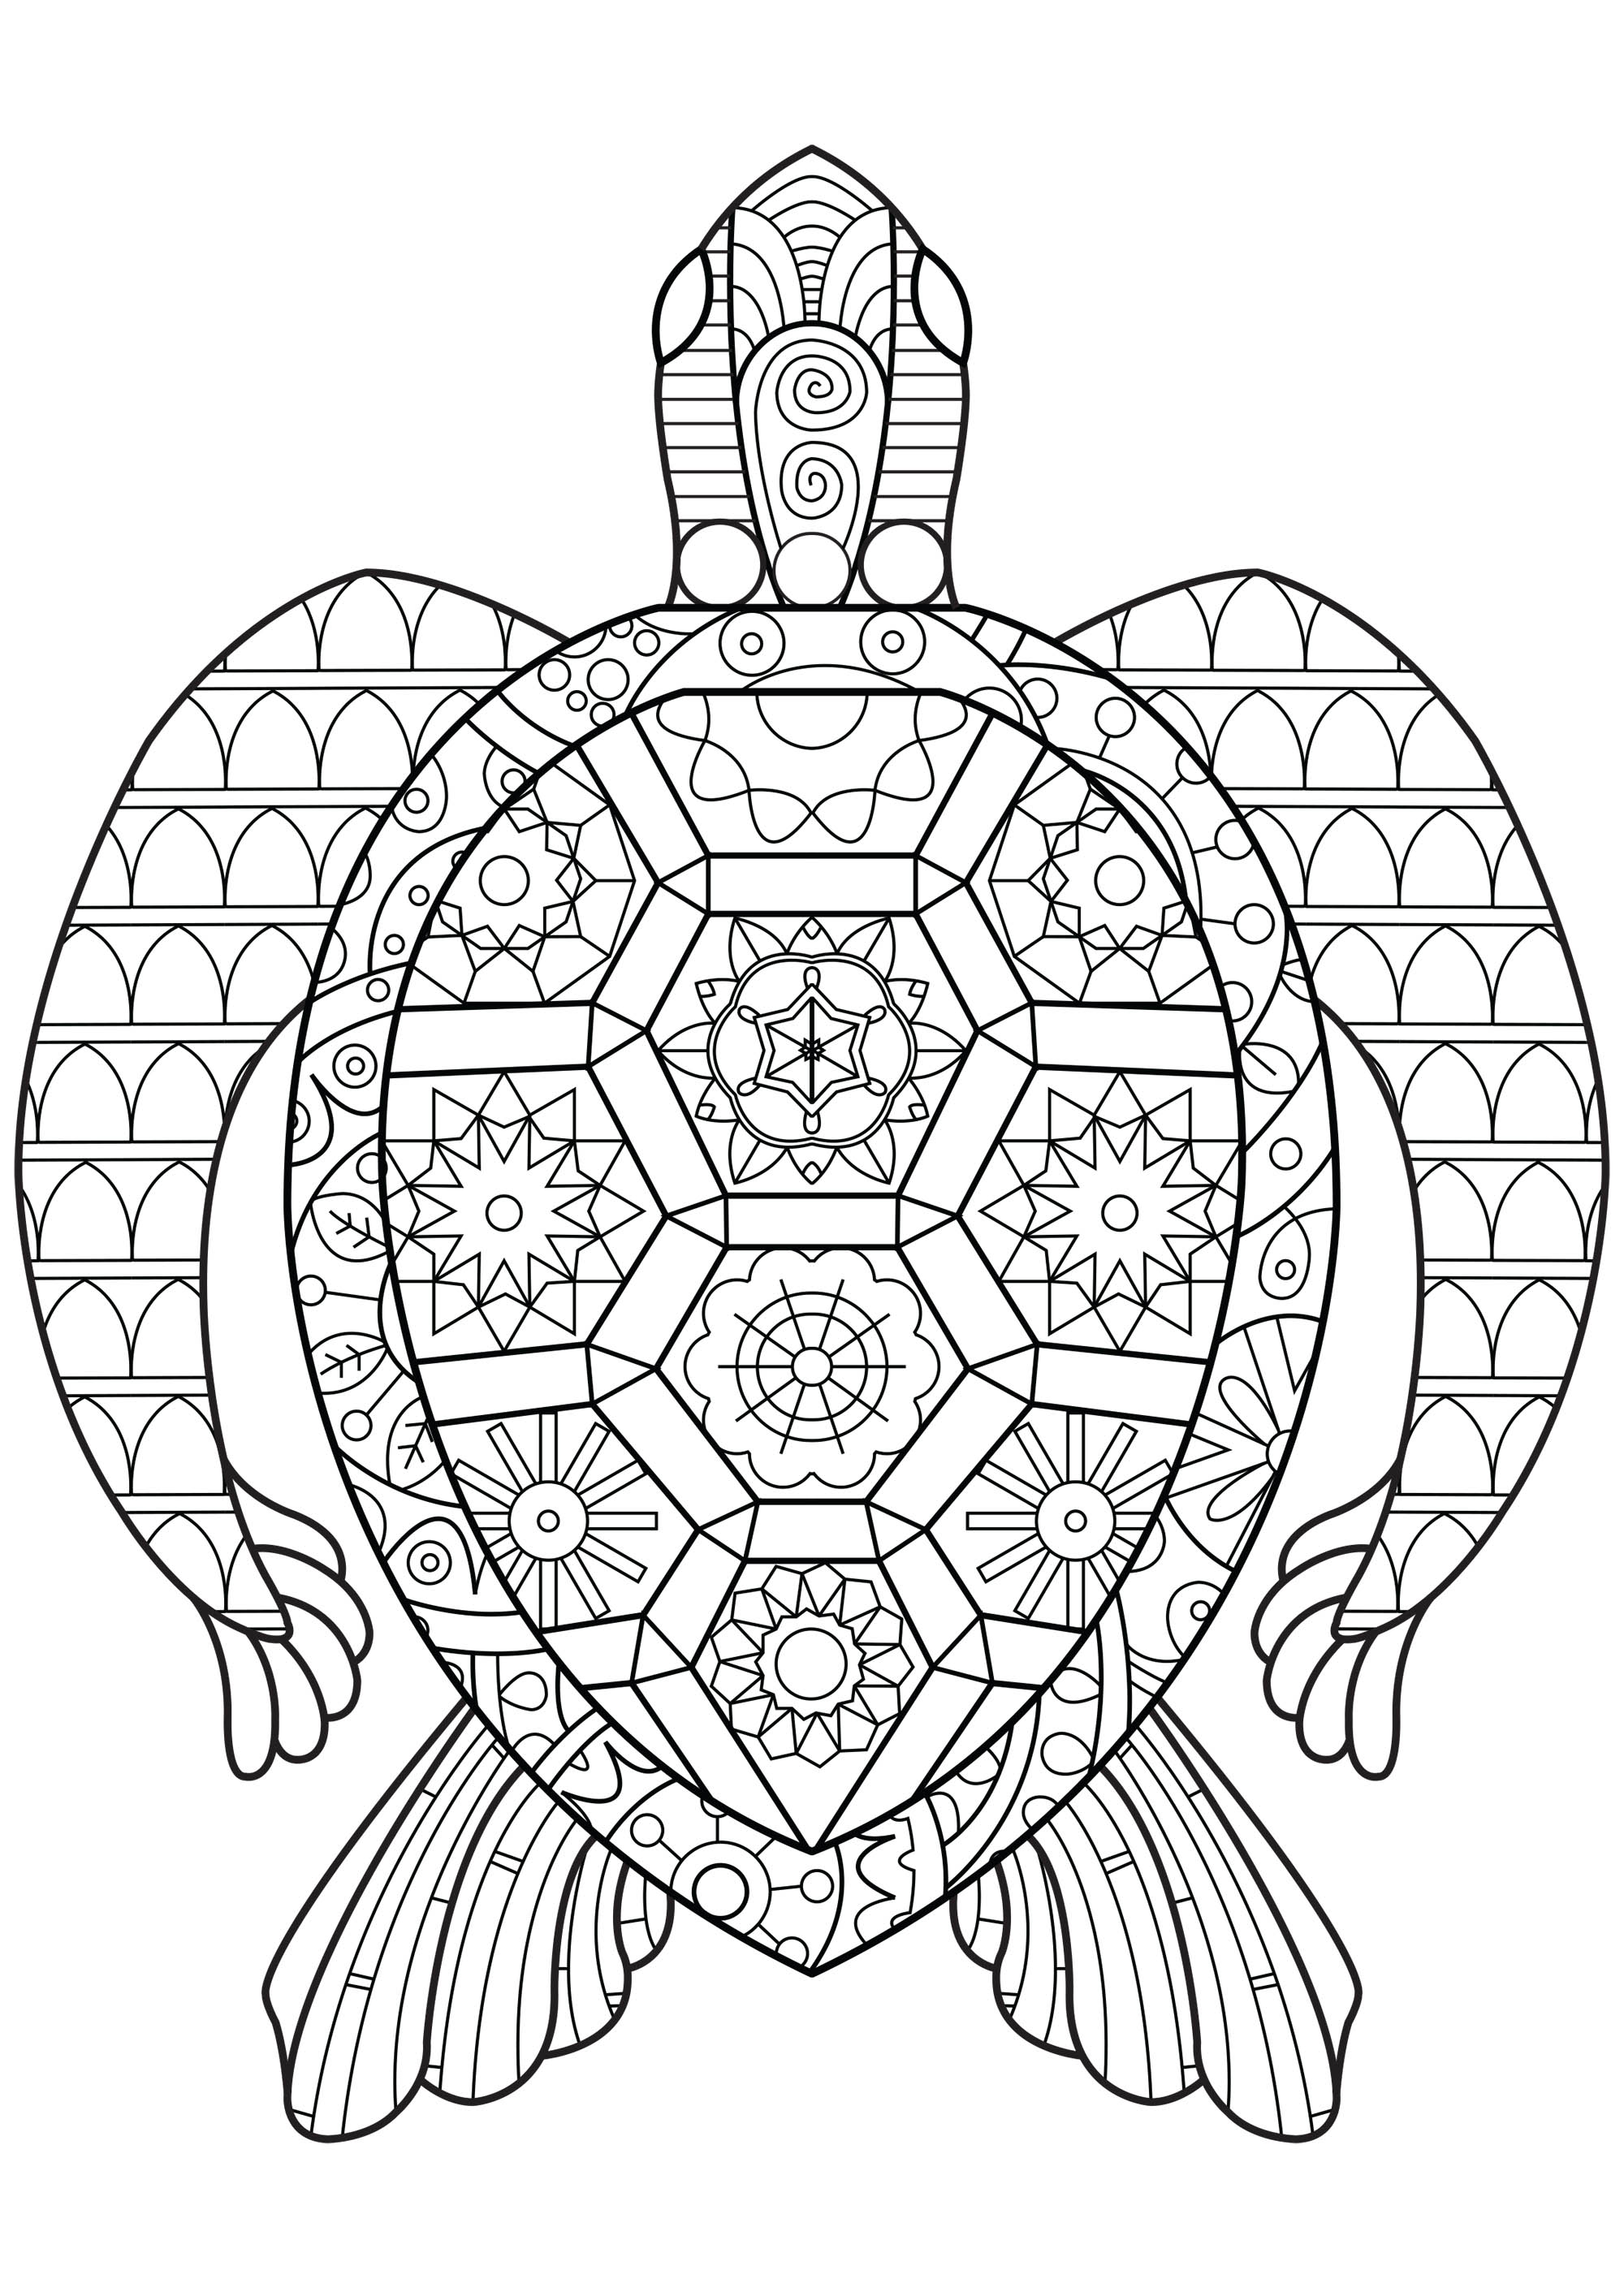 A turtle with abstract and abstract and very regular patterns